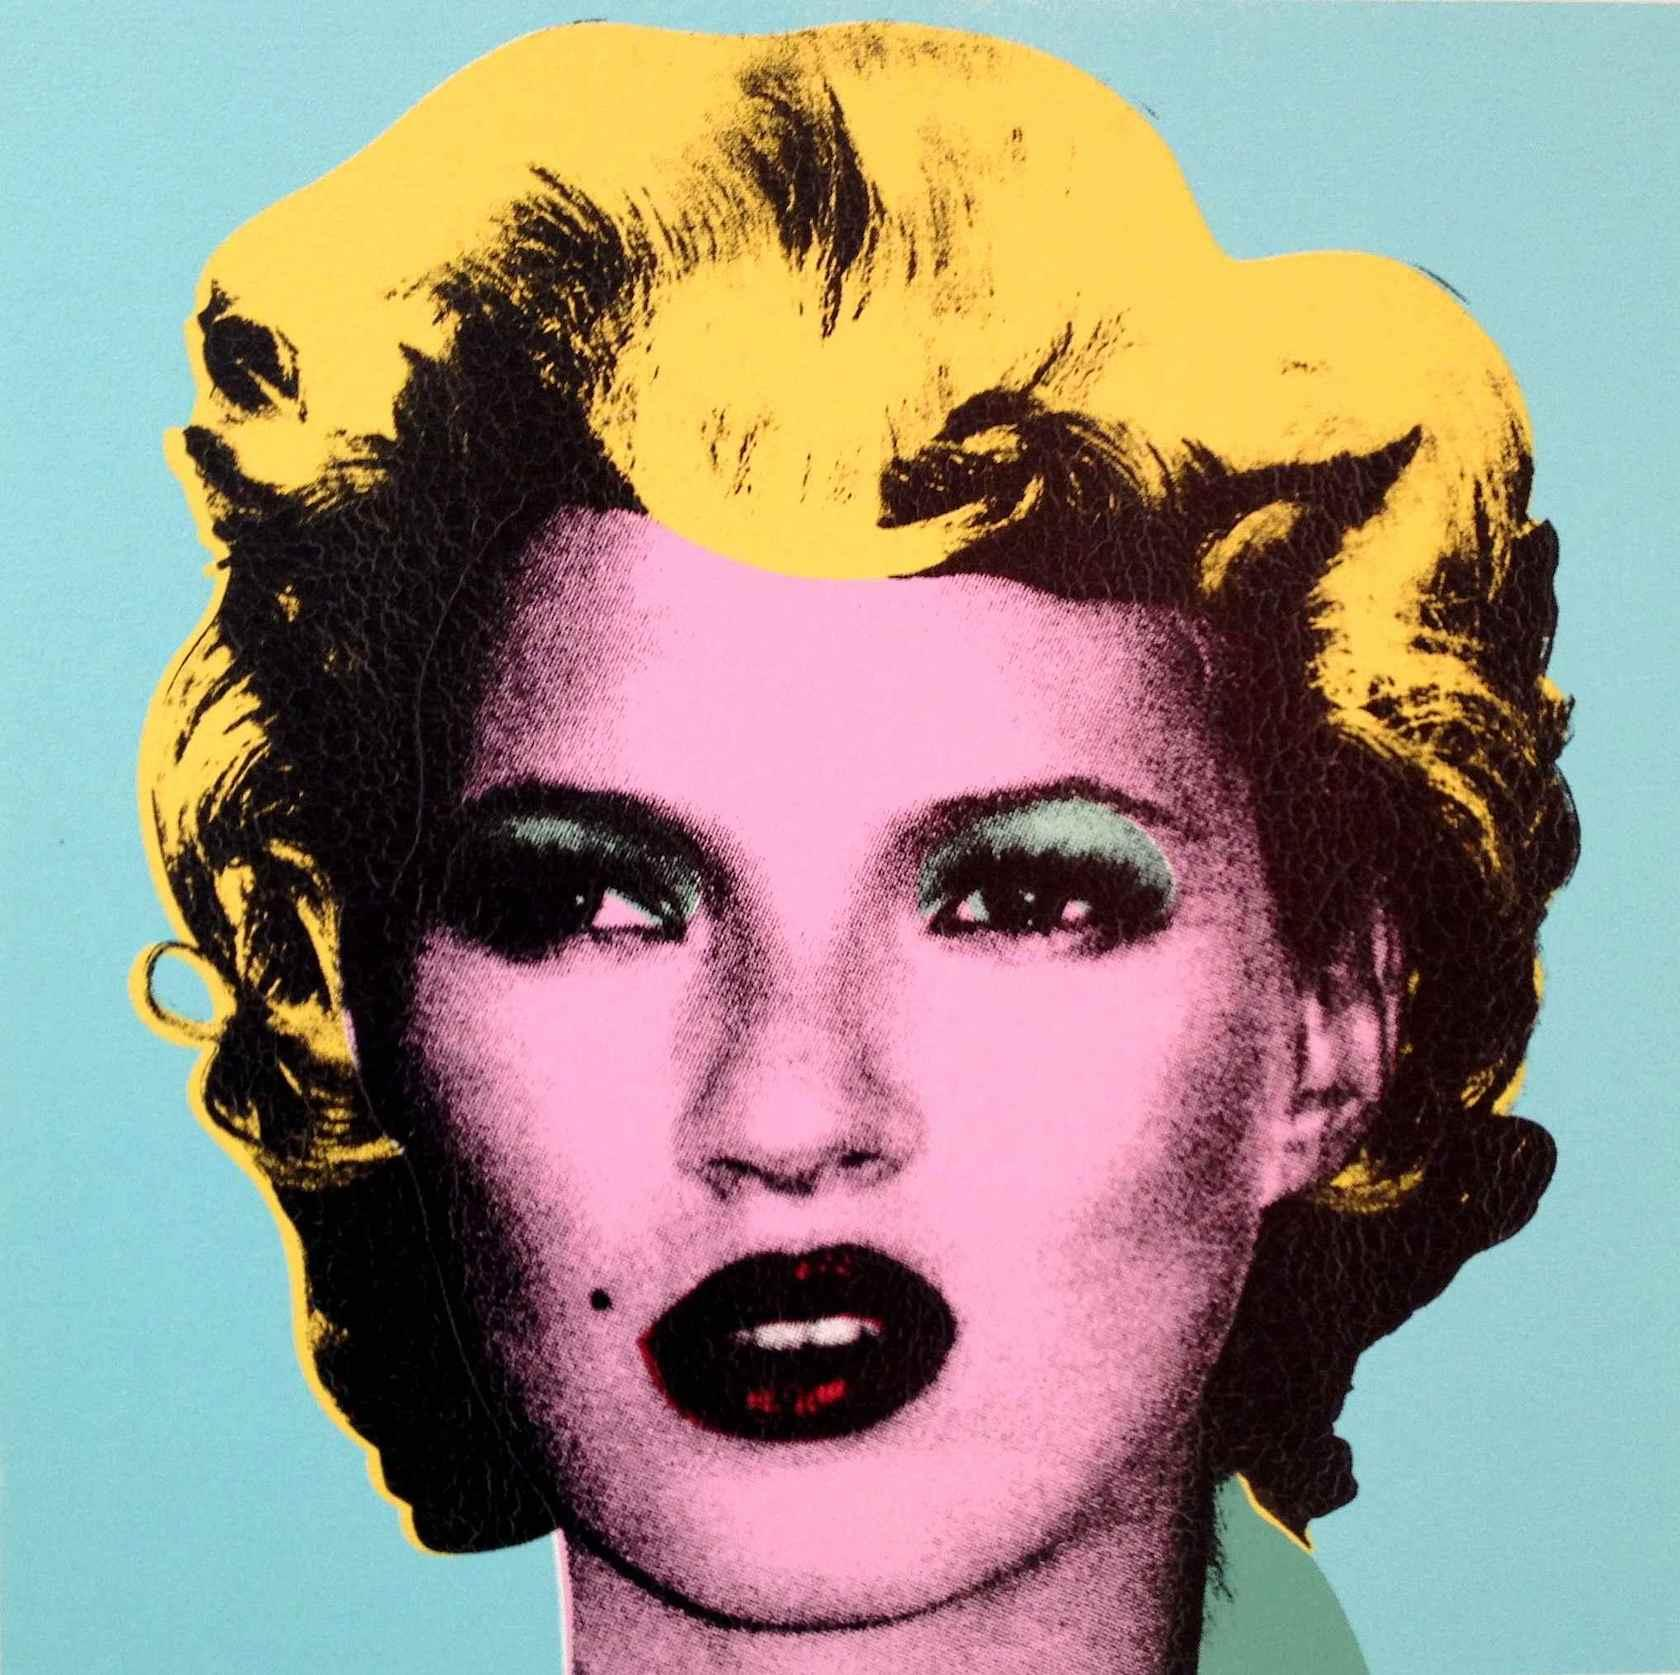 Banksy created his Kate Moss portrait in the style of Andy Warhol.